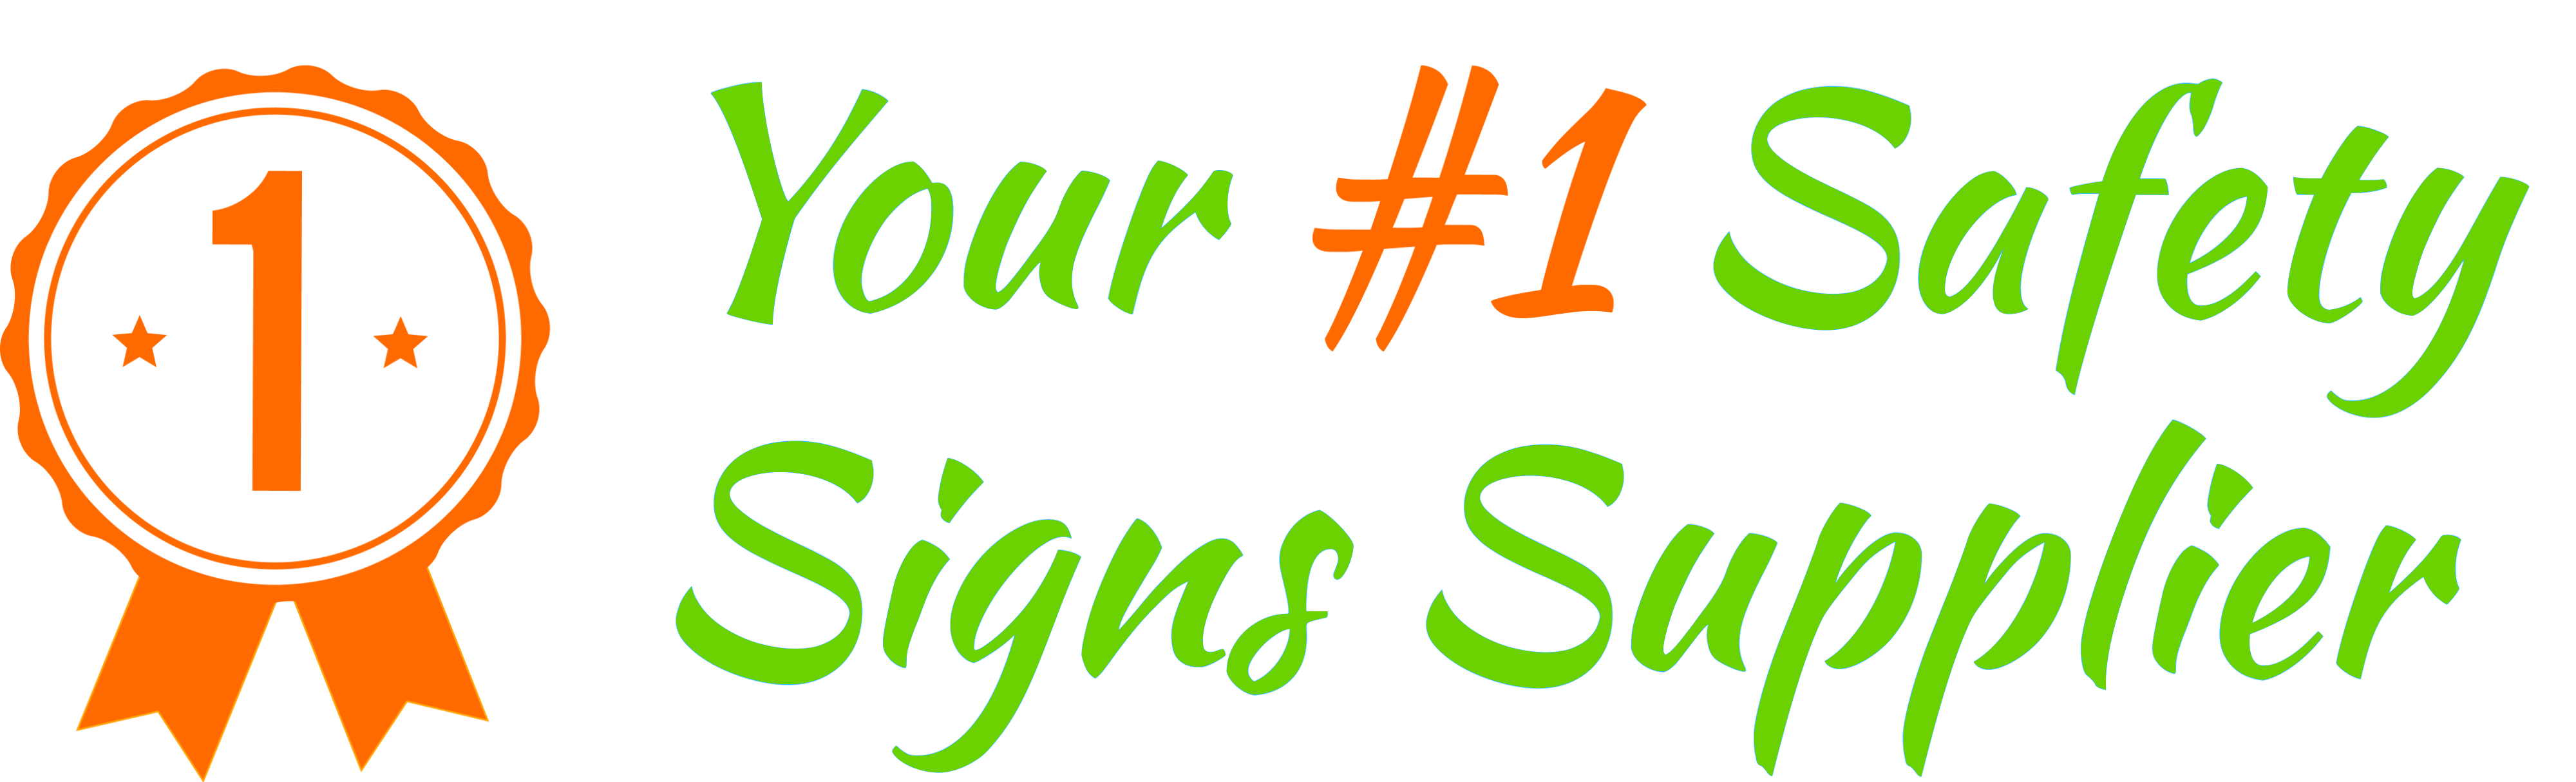 Your #1 Safet Signs Supplier